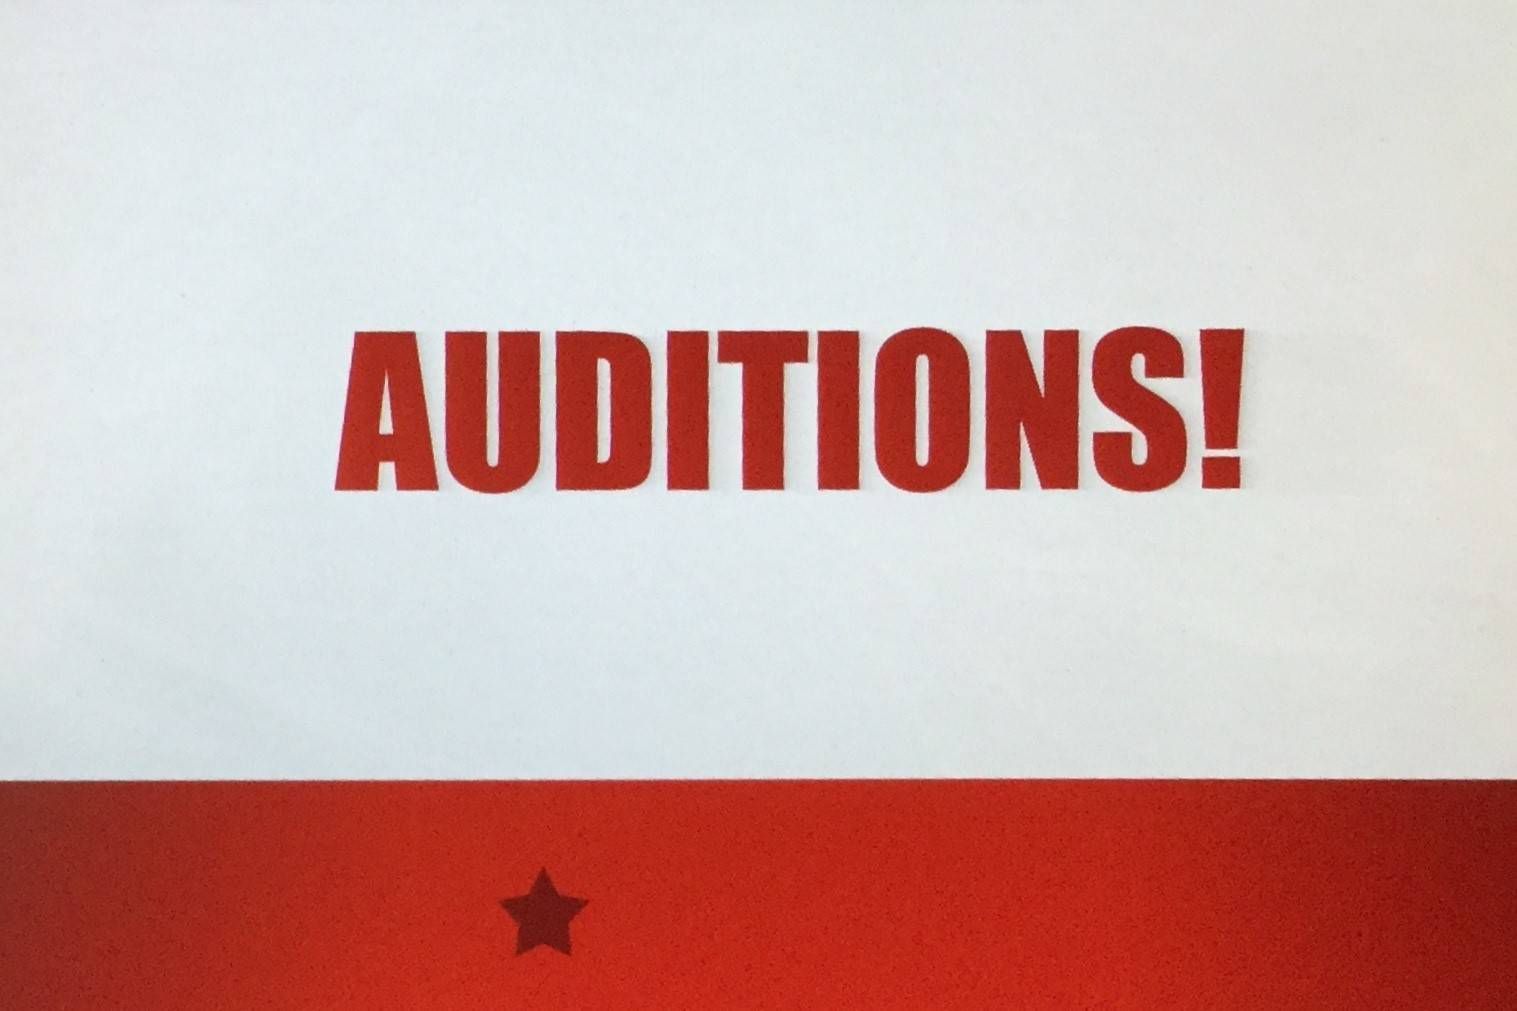 5b515e4d8a3210d447dc_auditions_.jpeg